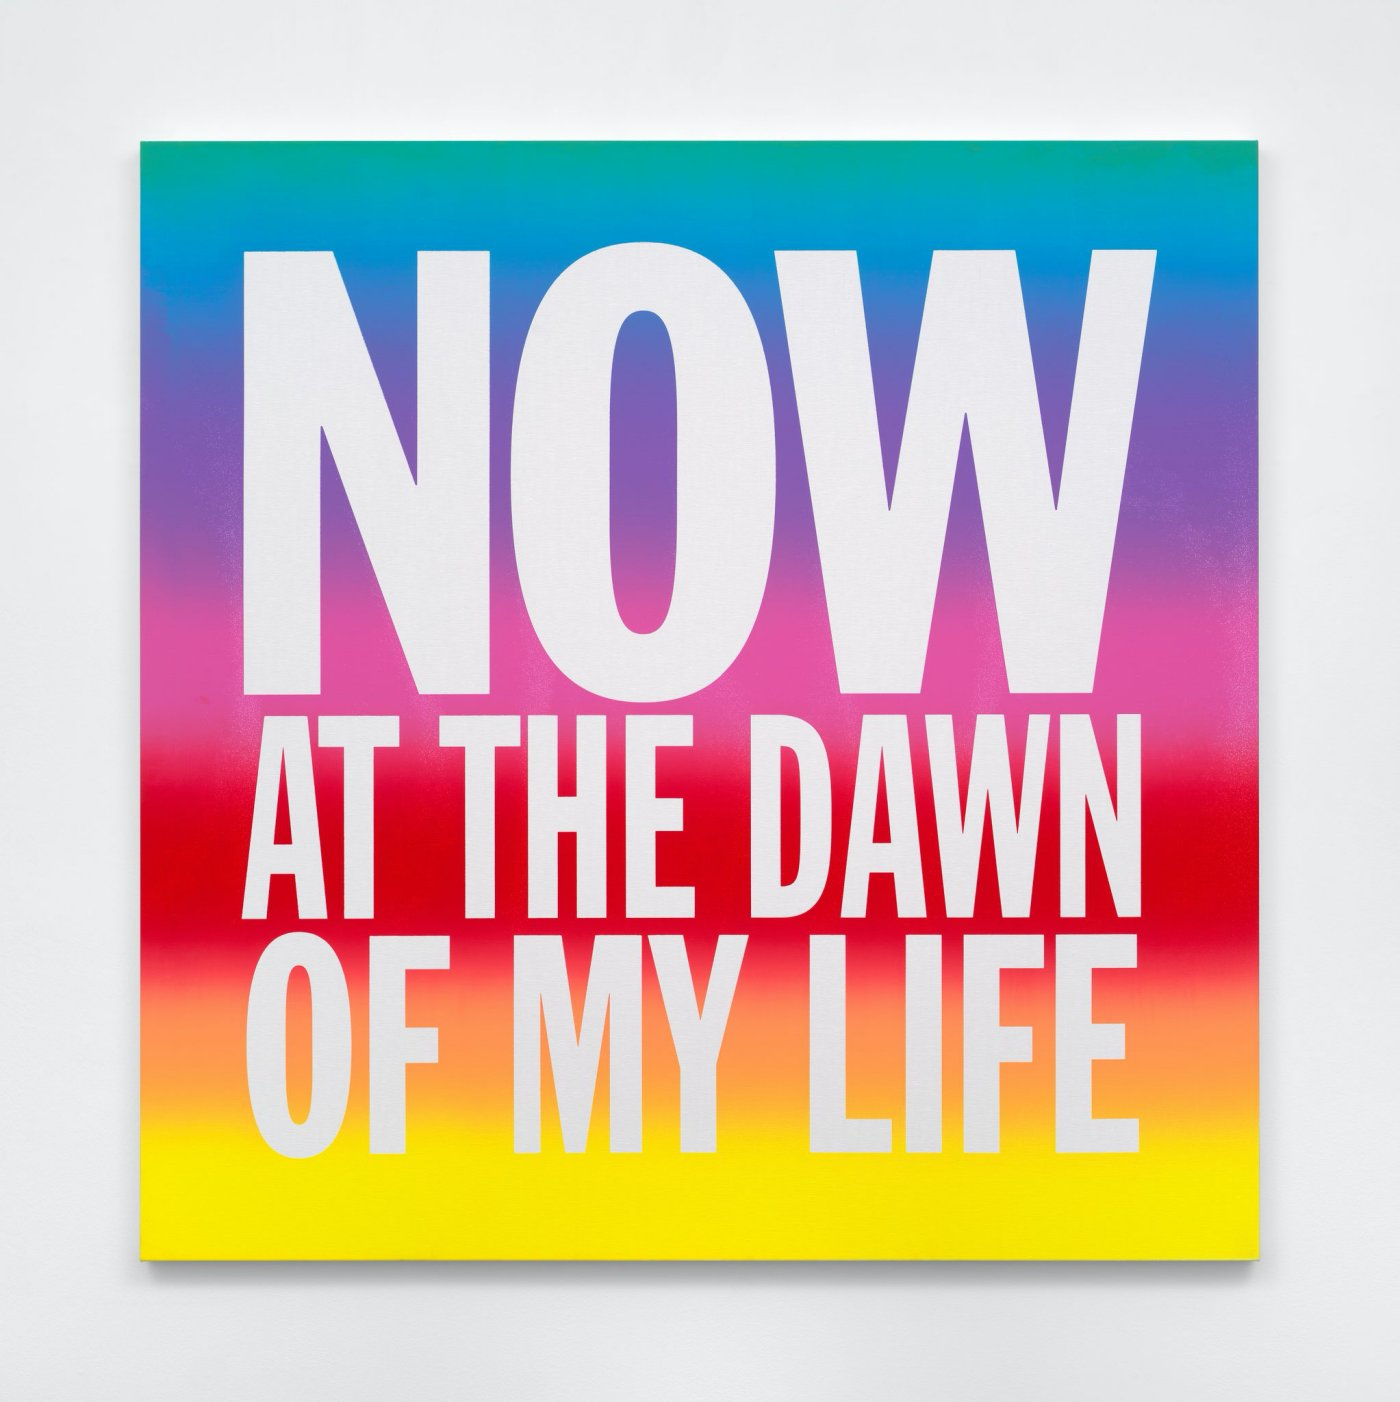 NOW AT THE DAWN OF MY LIFE